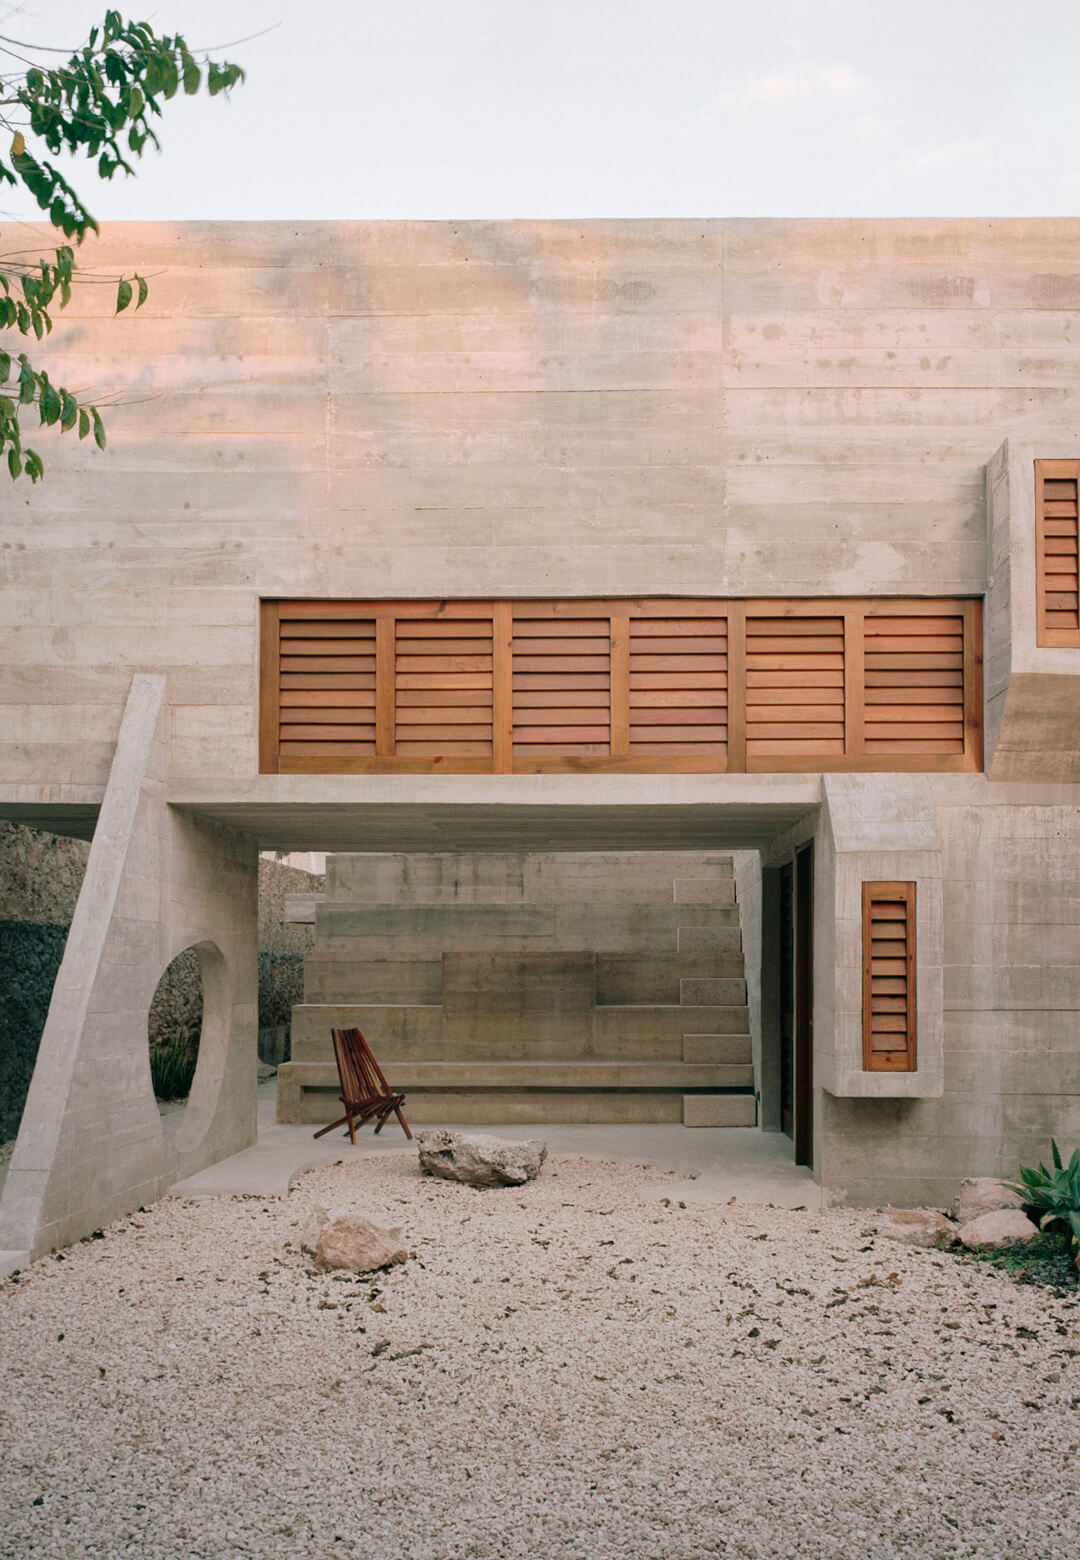 Casa Merida by Ludwig Godefroy in Yucatan, Mexico | Casa Merida | Ludwig Godefroy | STIRworld